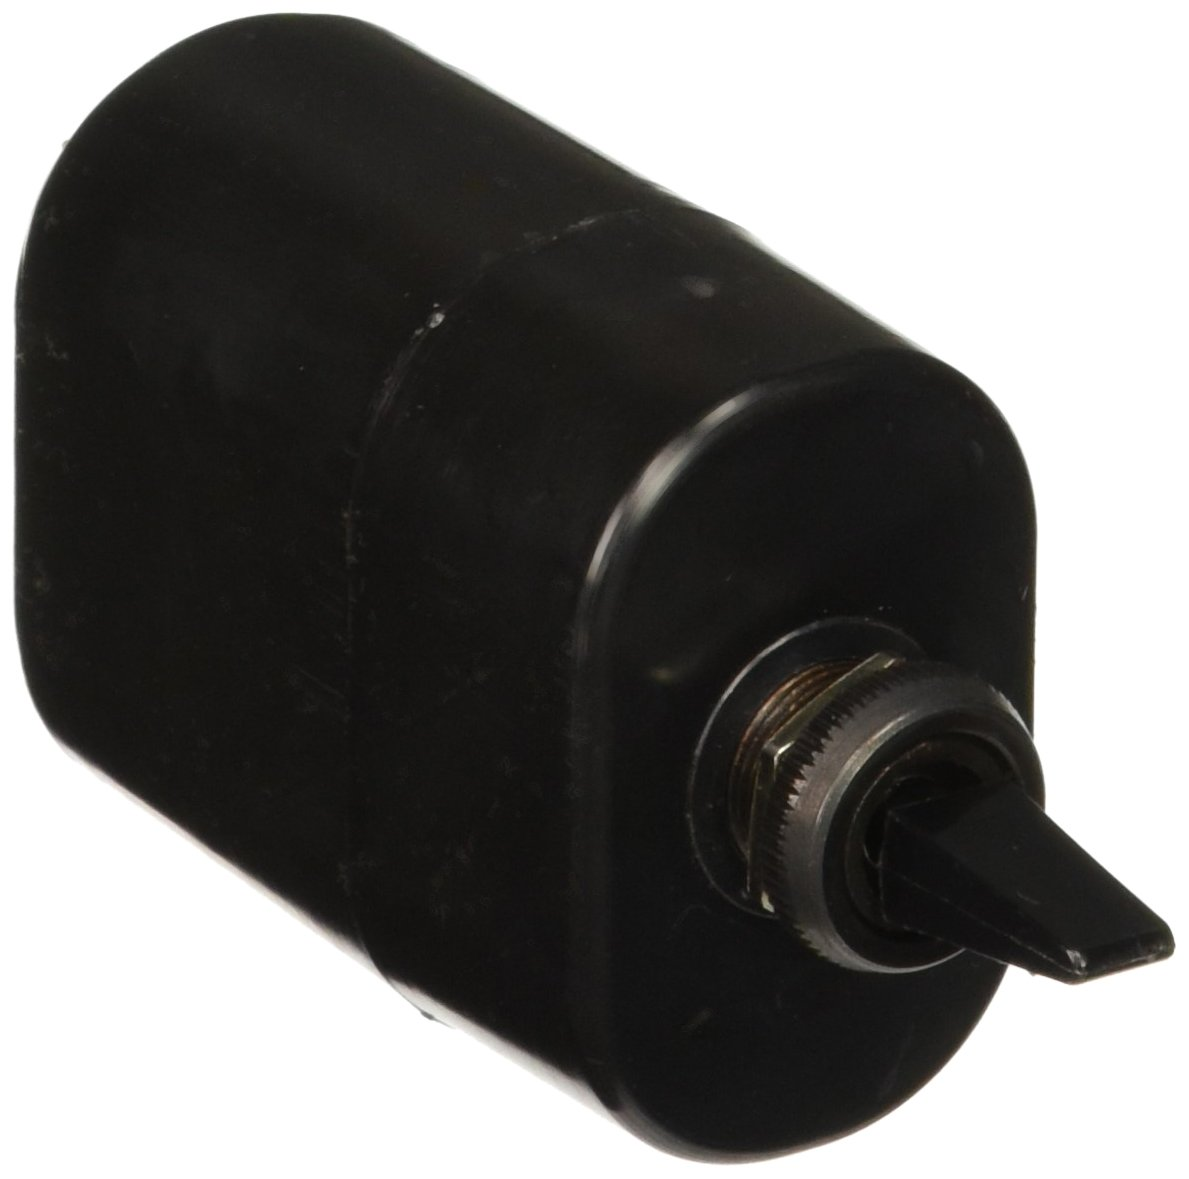 attwood Livewell Aerator Timer Switch 14292-3 by attwood